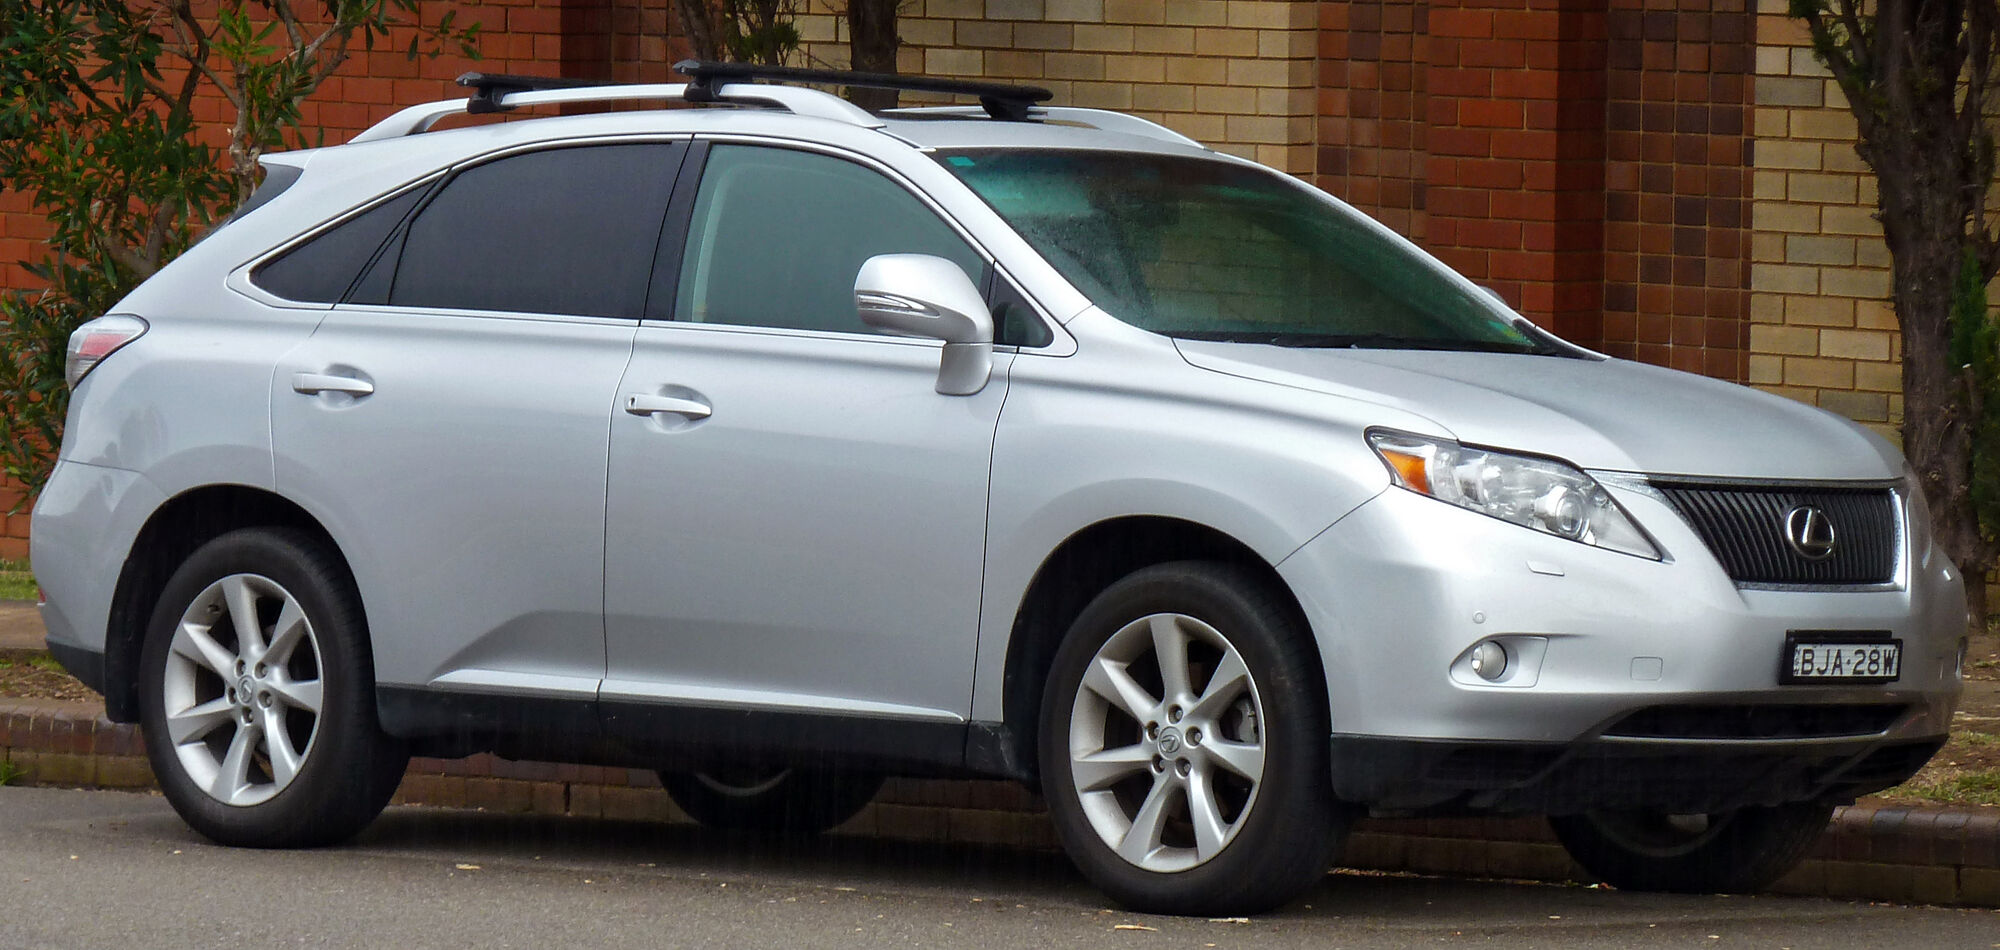 https://vignette.wikia.nocookie.net/tractors/images/f/f3/2009-2010_Lexus_RX_350_%28GGL15R%29_Sports_Luxury_wagon_01.jpg/revision/latest/scale-to-width-down/2000?cb=20110414164914